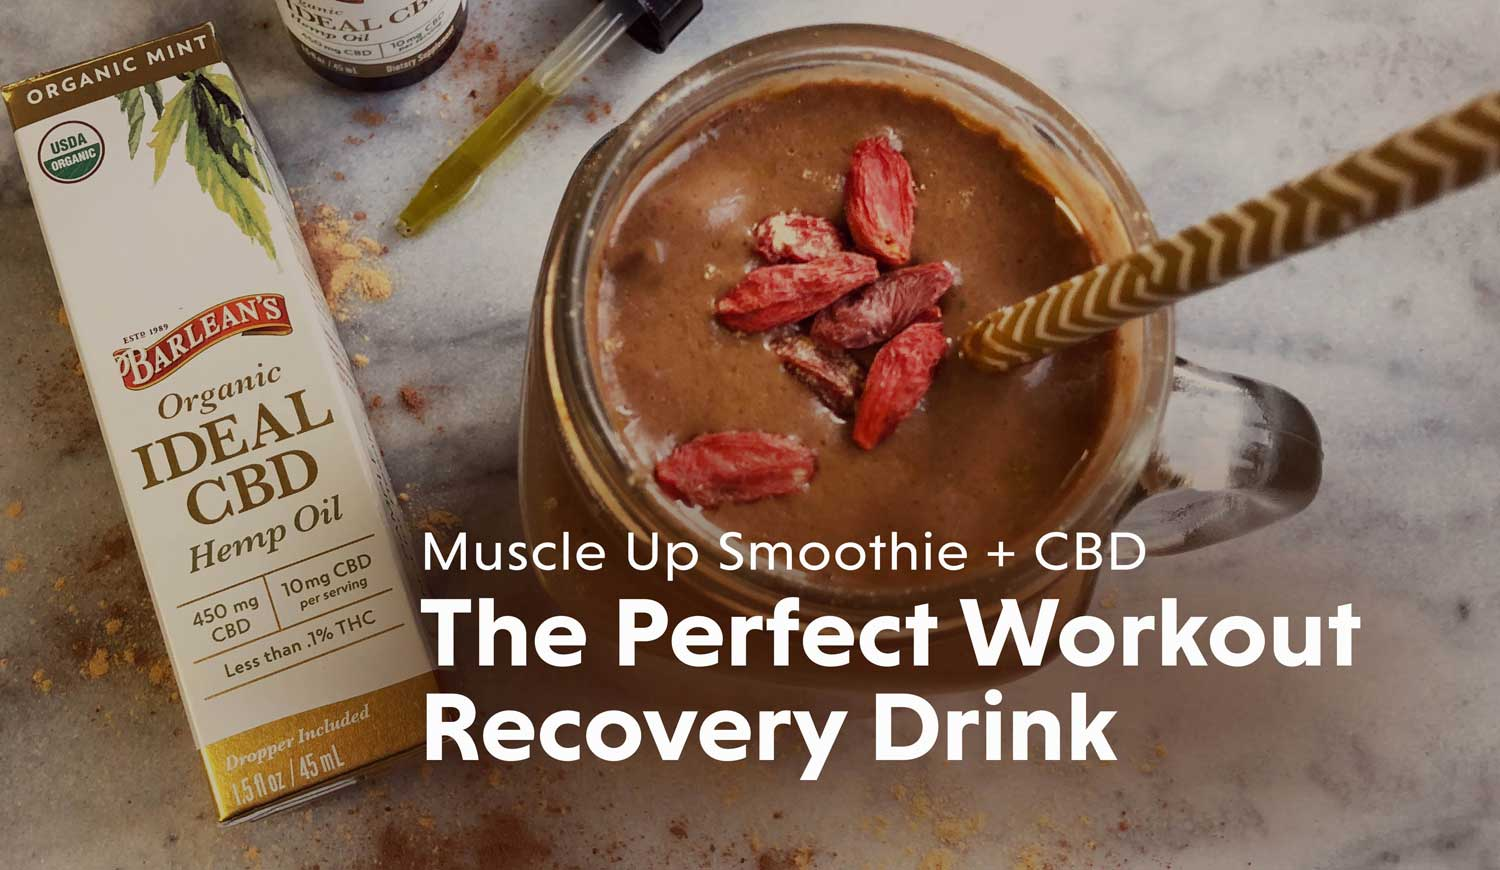 Workout Recovery Drink with CBD